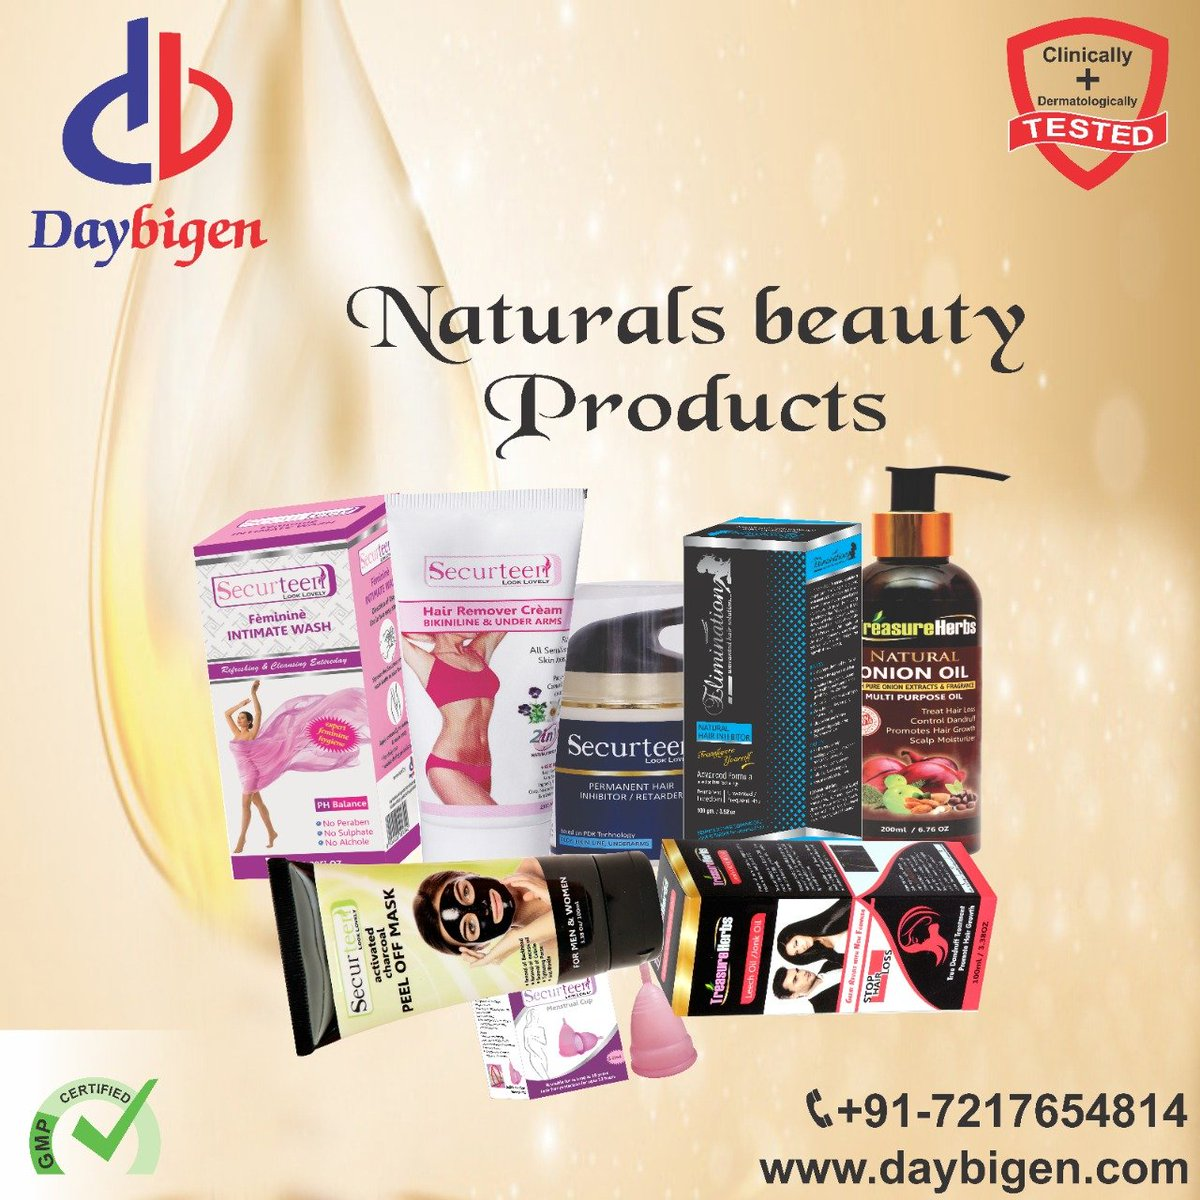 """Natural beauty products""  BUY NOW CLICK HERE : https://daybigen.com/   #daybigen #cosmetics #cosmeticsproducts #look #feelspecial #womens #delhigirls #indiangirls #amazon #flipkart #buy #online #specialeffectsmakeup #festivalsession #wednesday #personalcareproduct #healthcare"